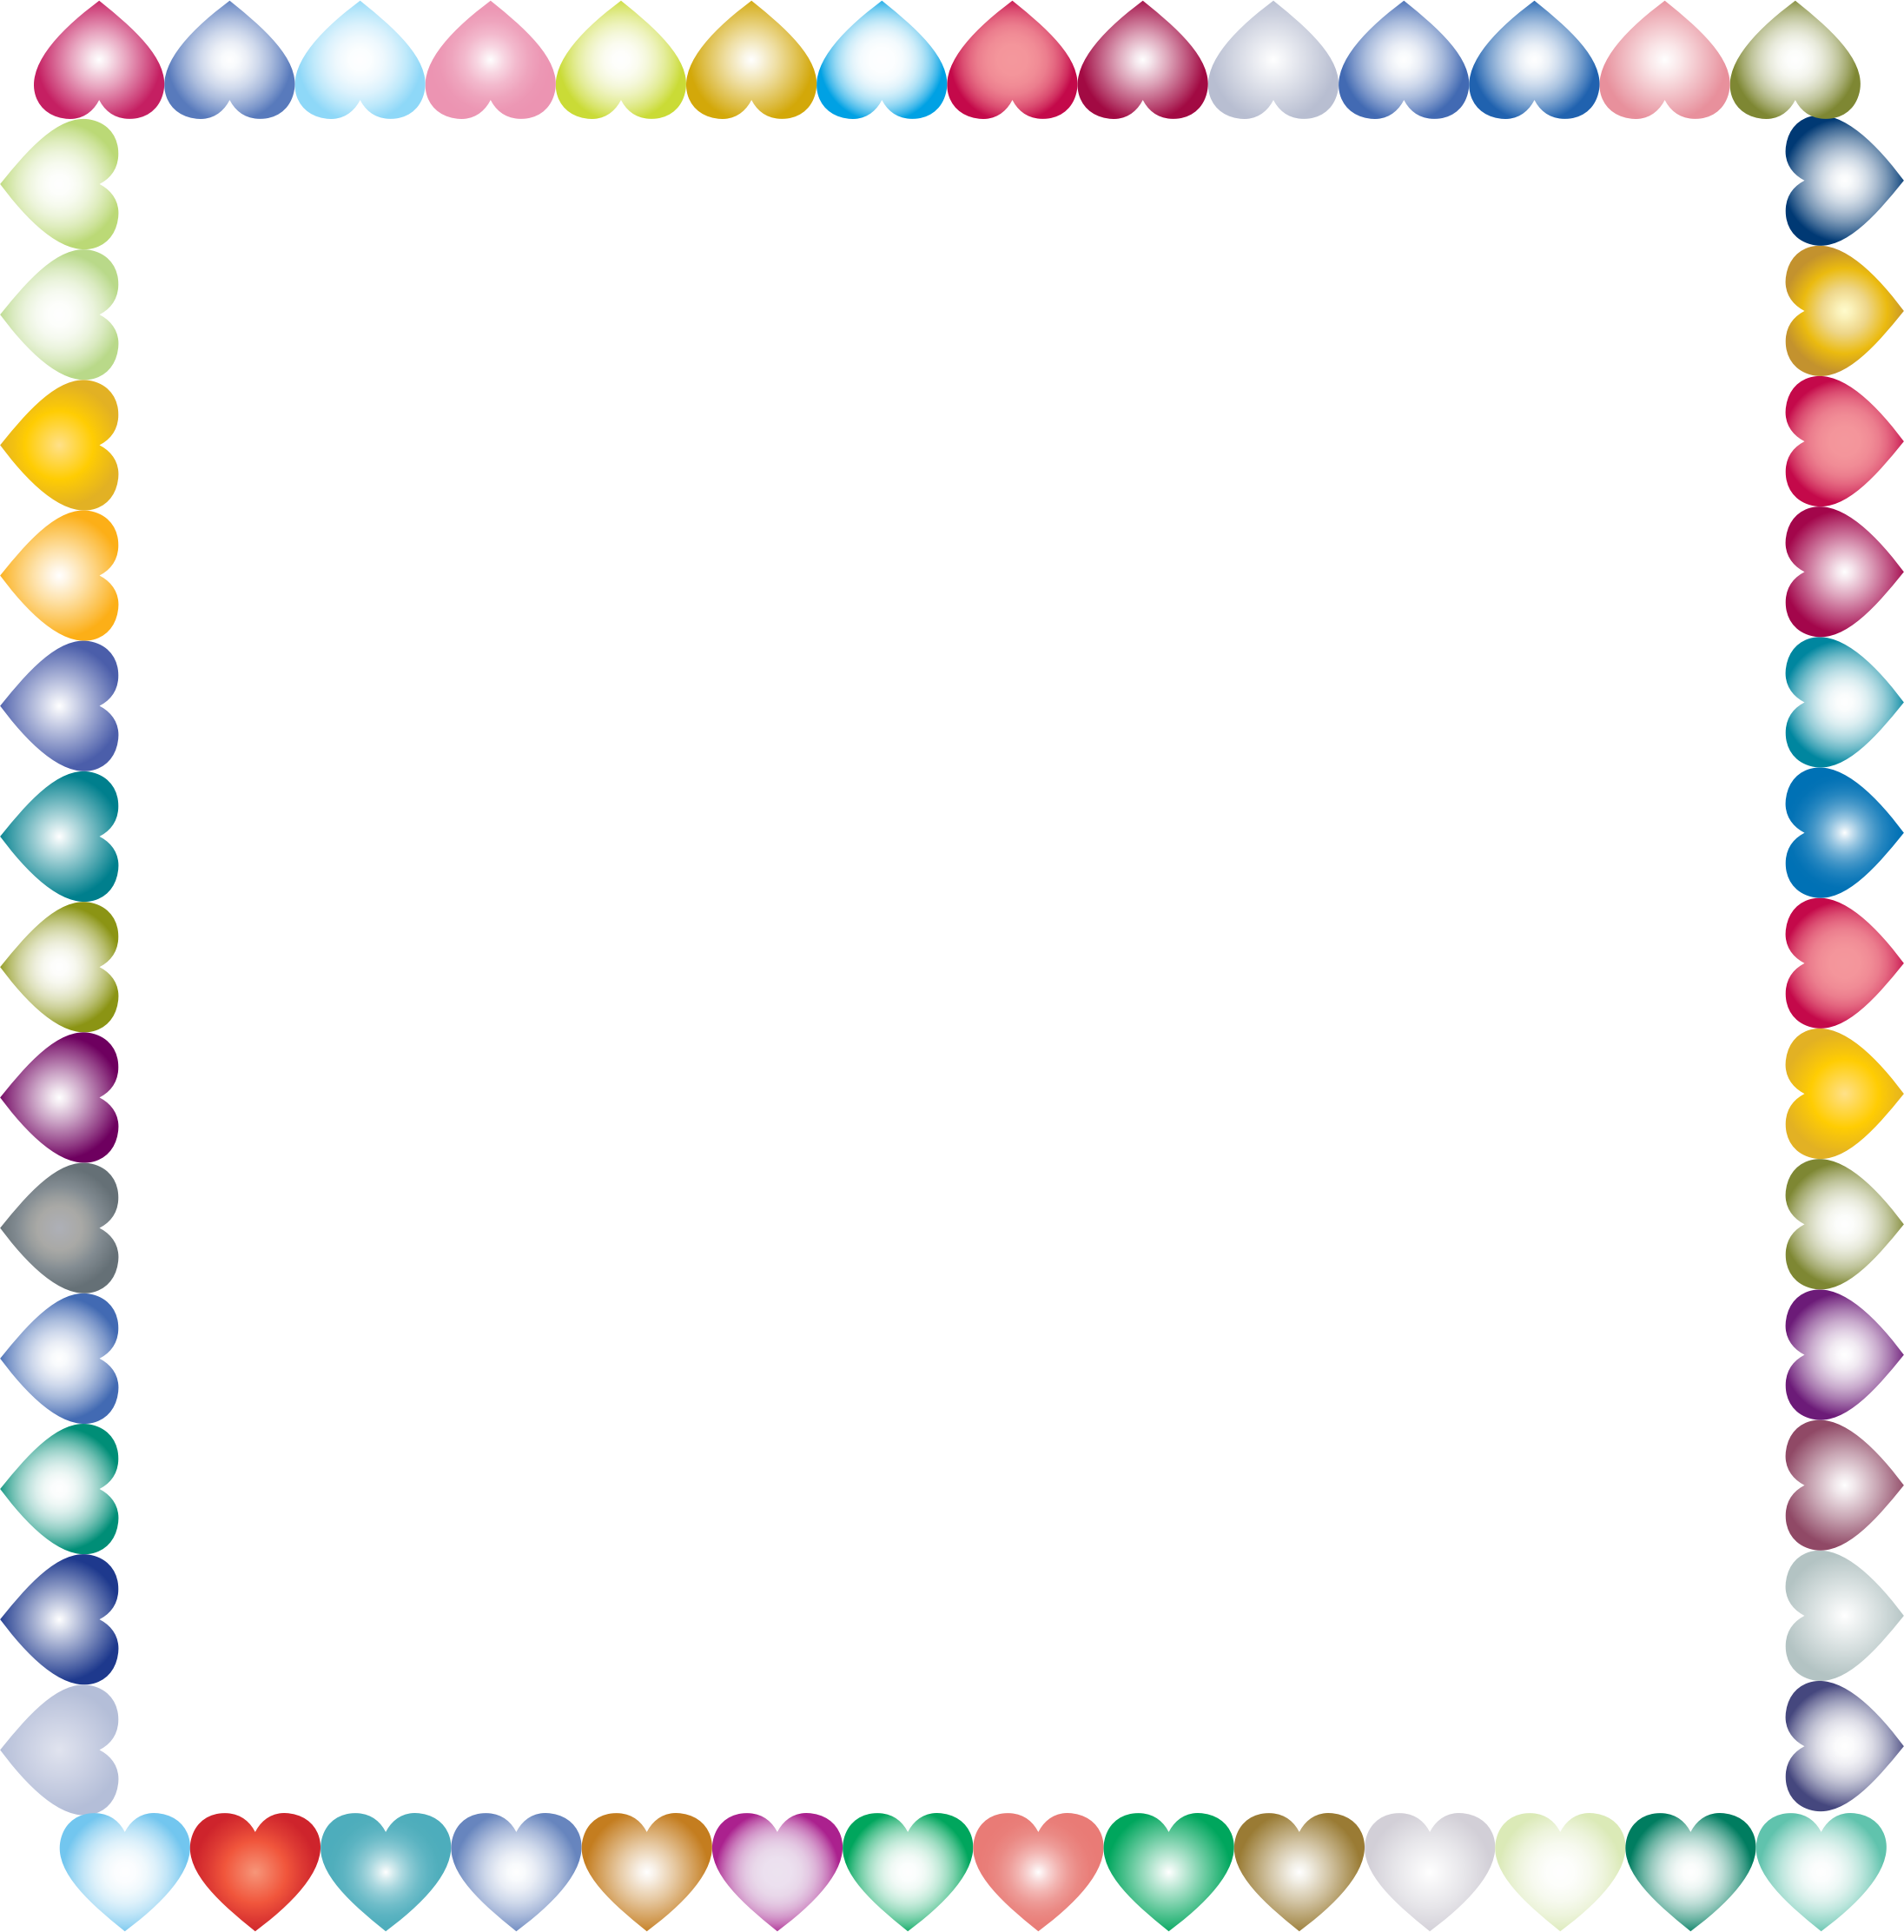 Prismatic Hearts Frame 3 by GDJ